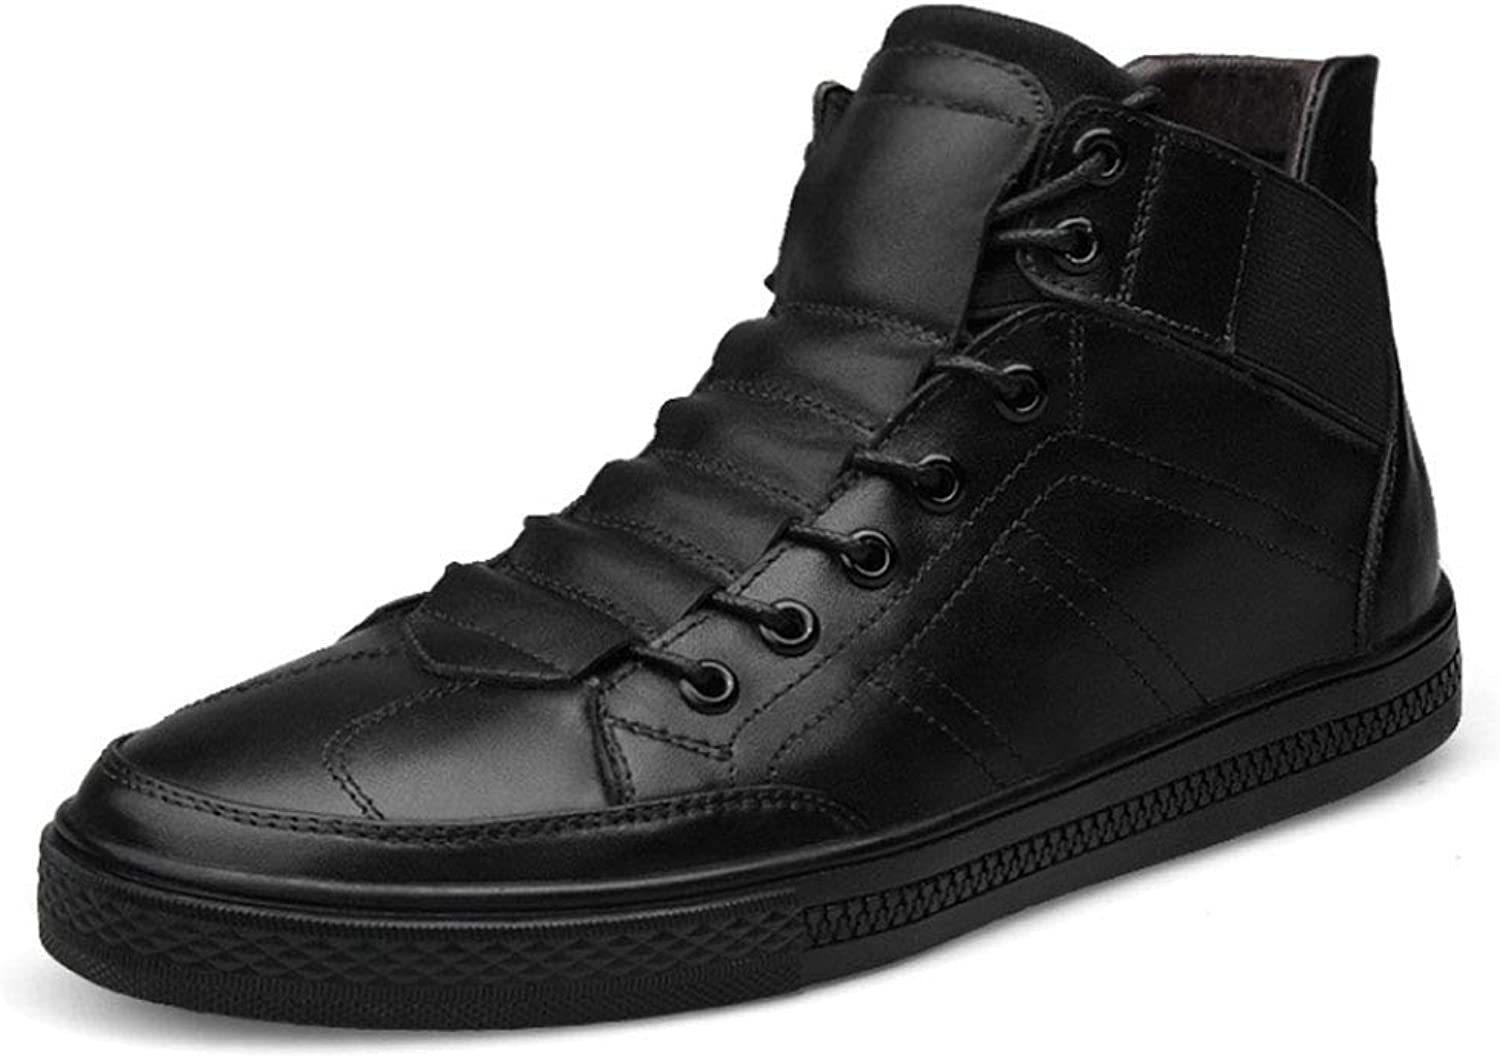 JHHXW Leather shoes, youth trend shoes, men's shoes, lace-up shoes, high-top men's casual shoes